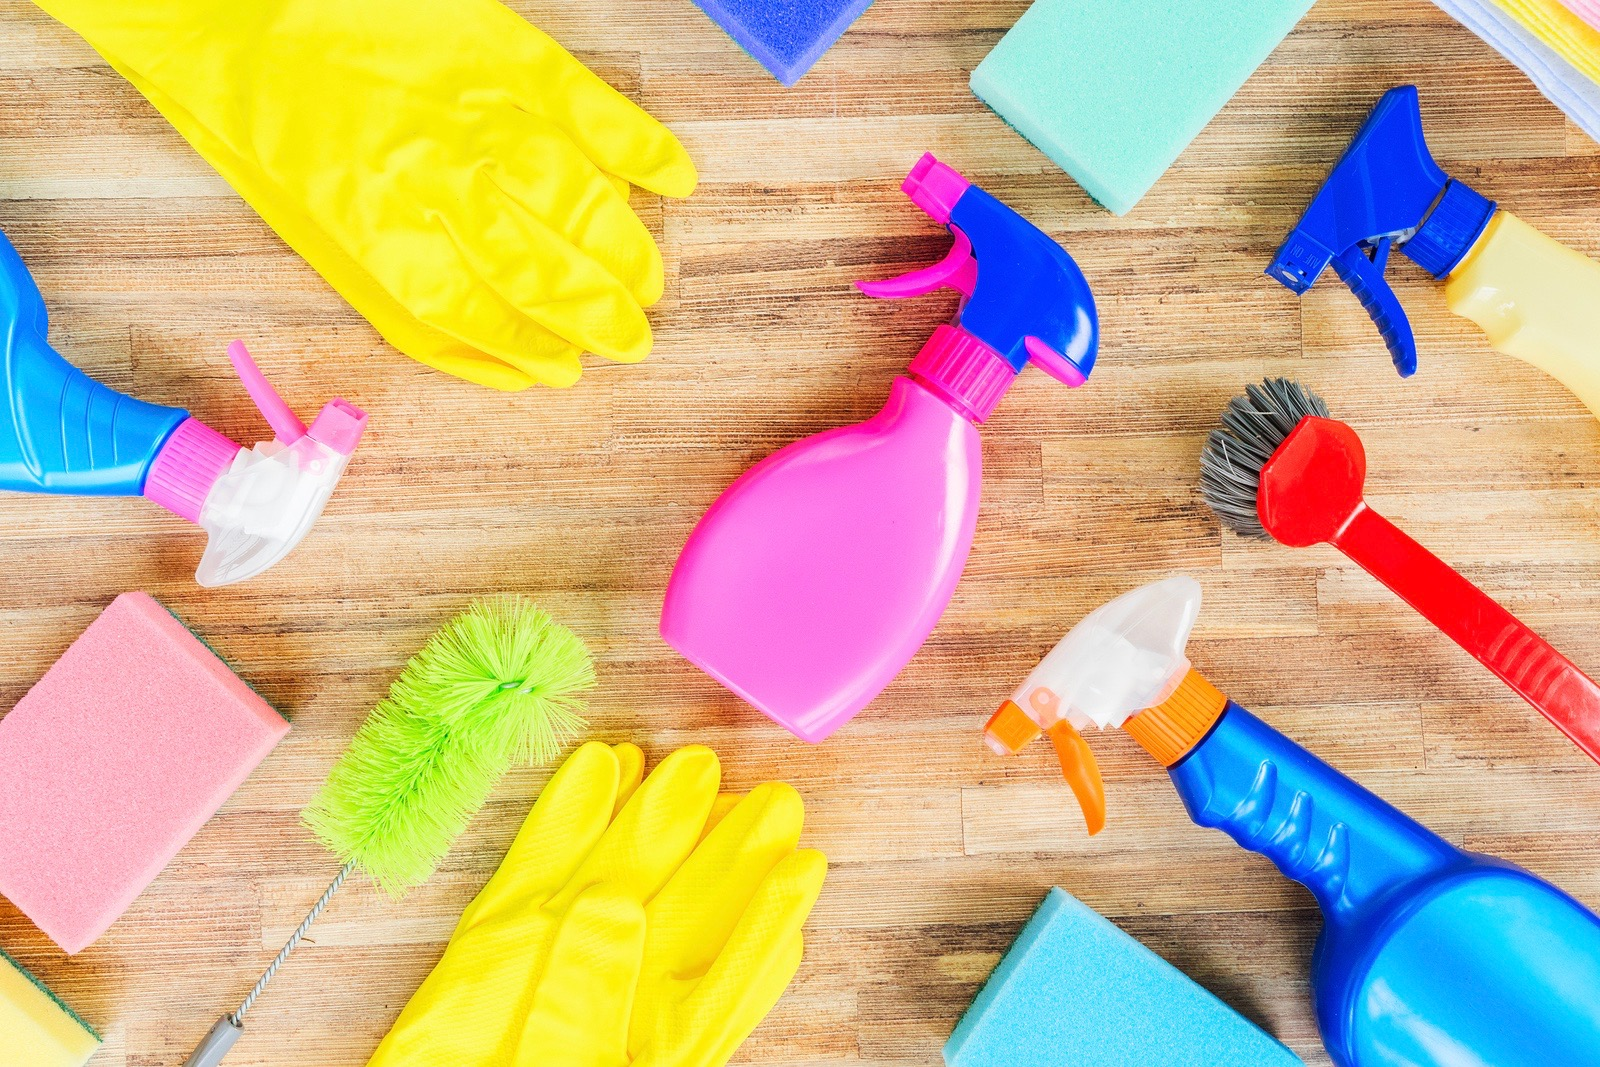 See what tips we have to offer for getting through spring cleaning.